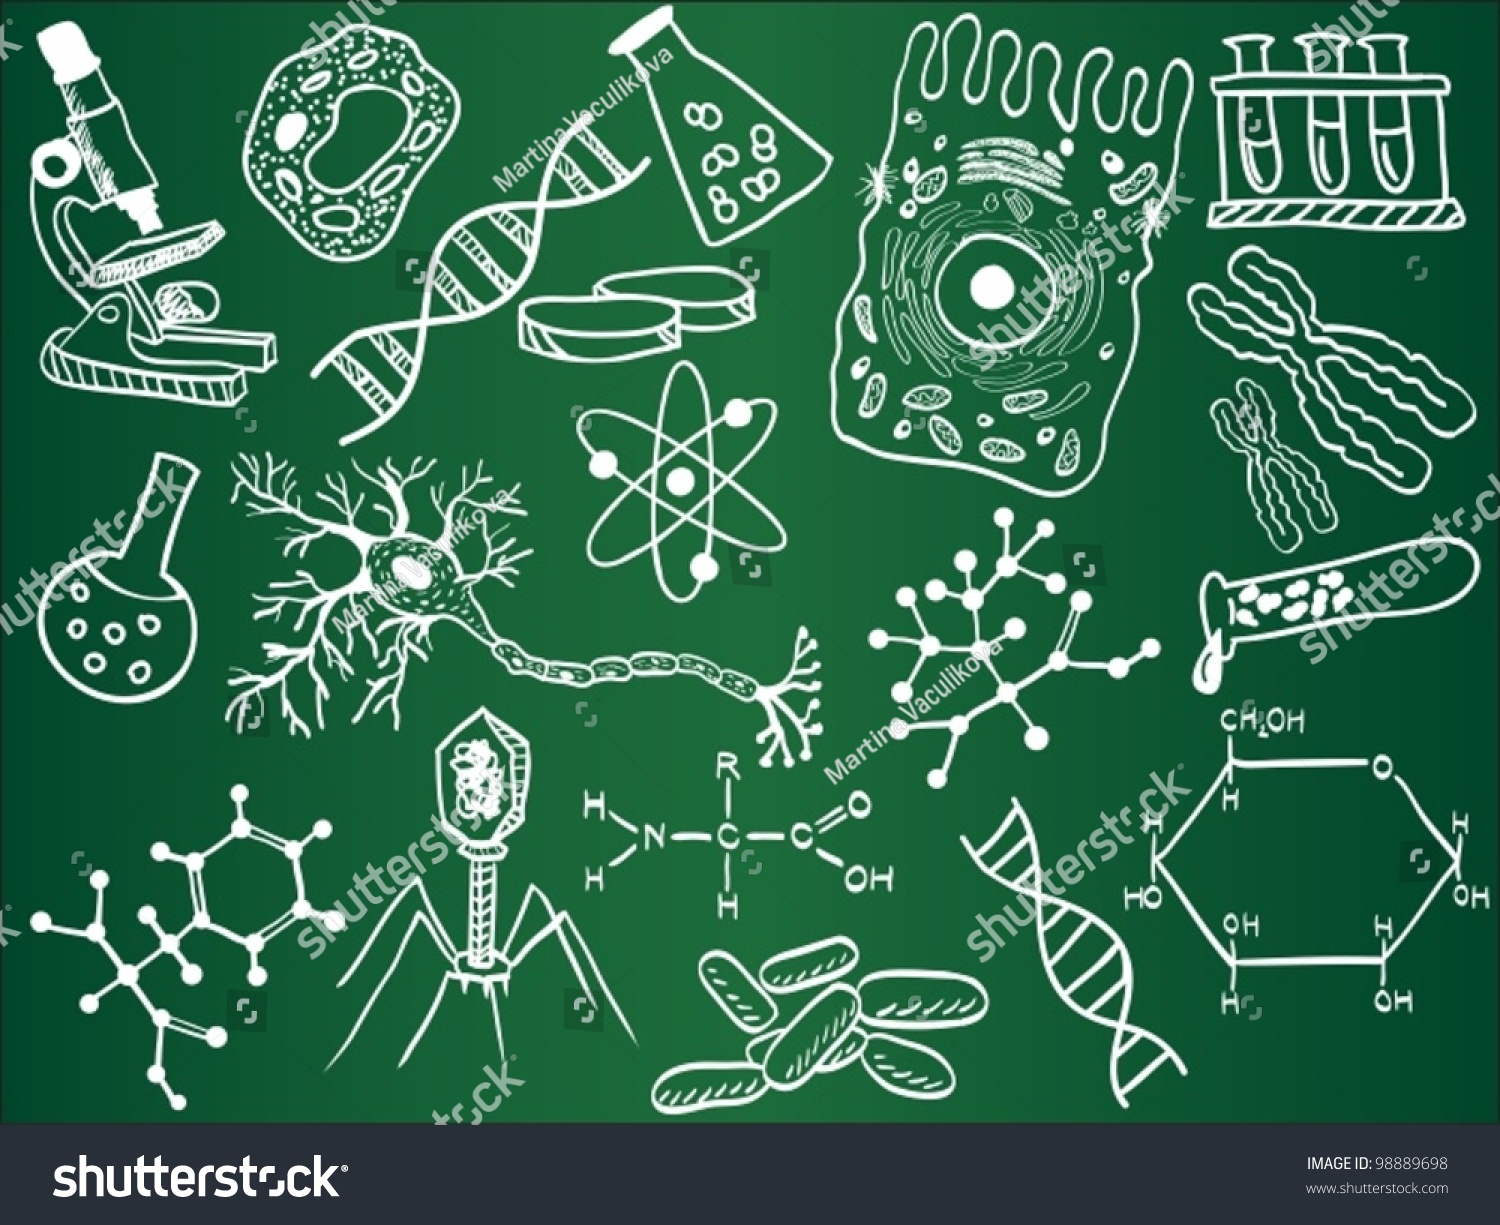 Biology Sketches On School Board Vector Stock Vector ...